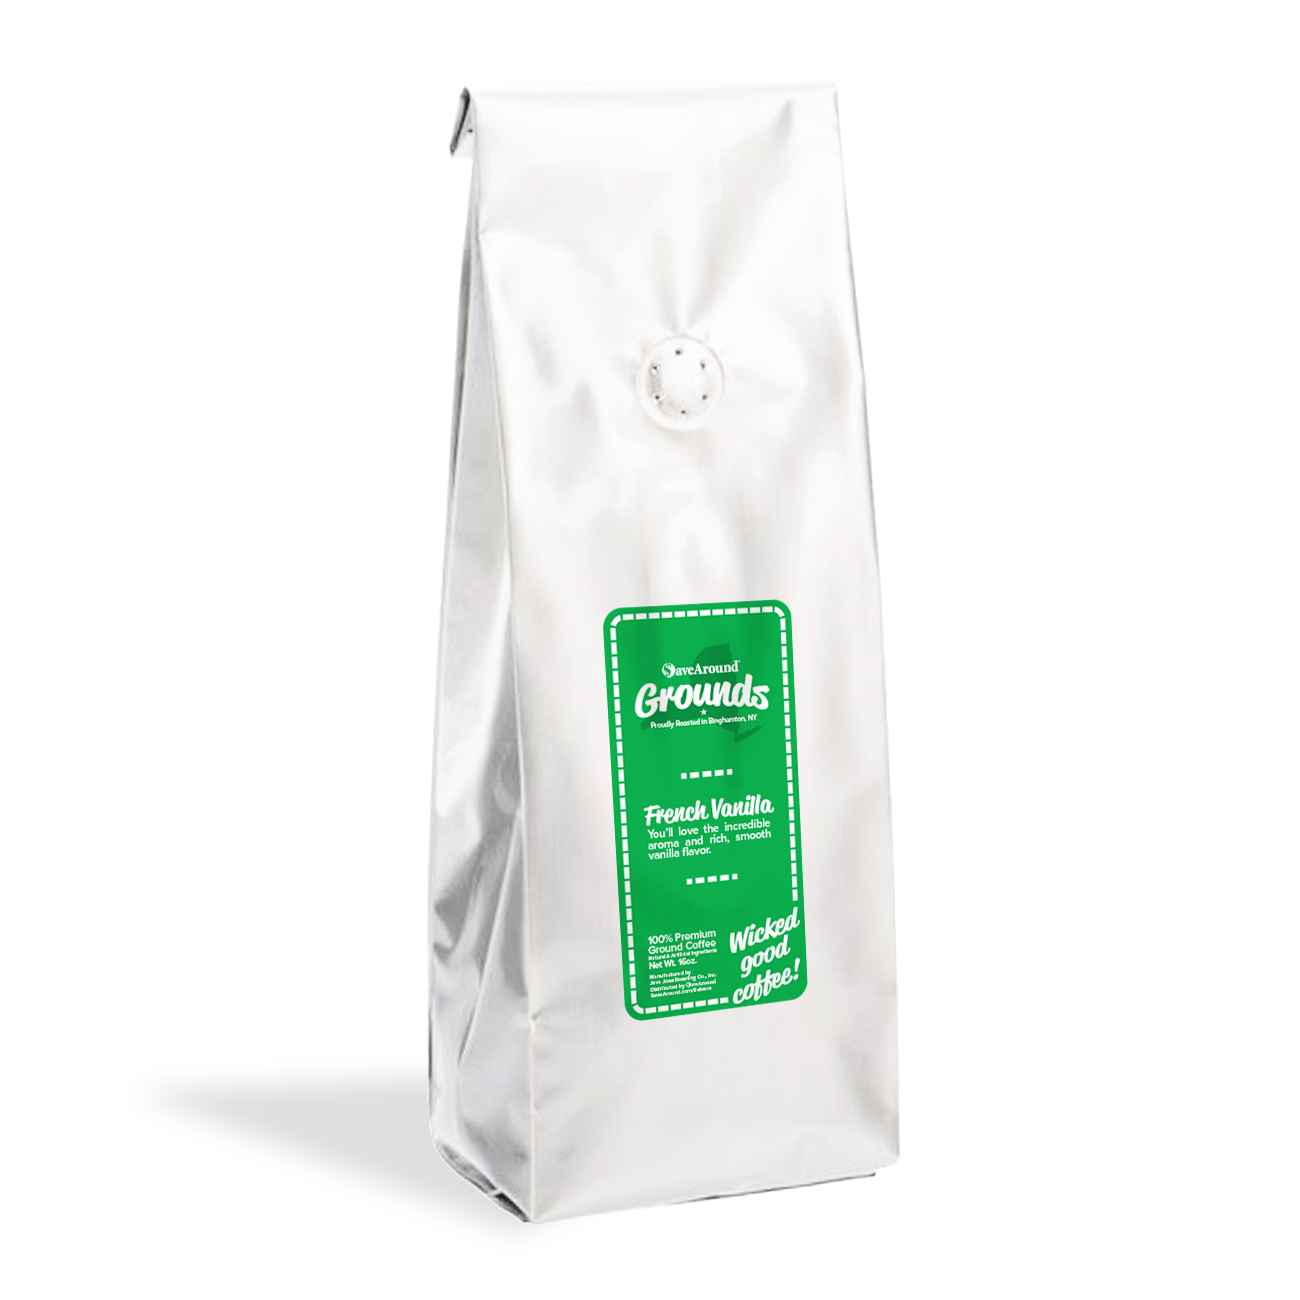 SaveAround® Grounds French Vanilla Premium Coffee